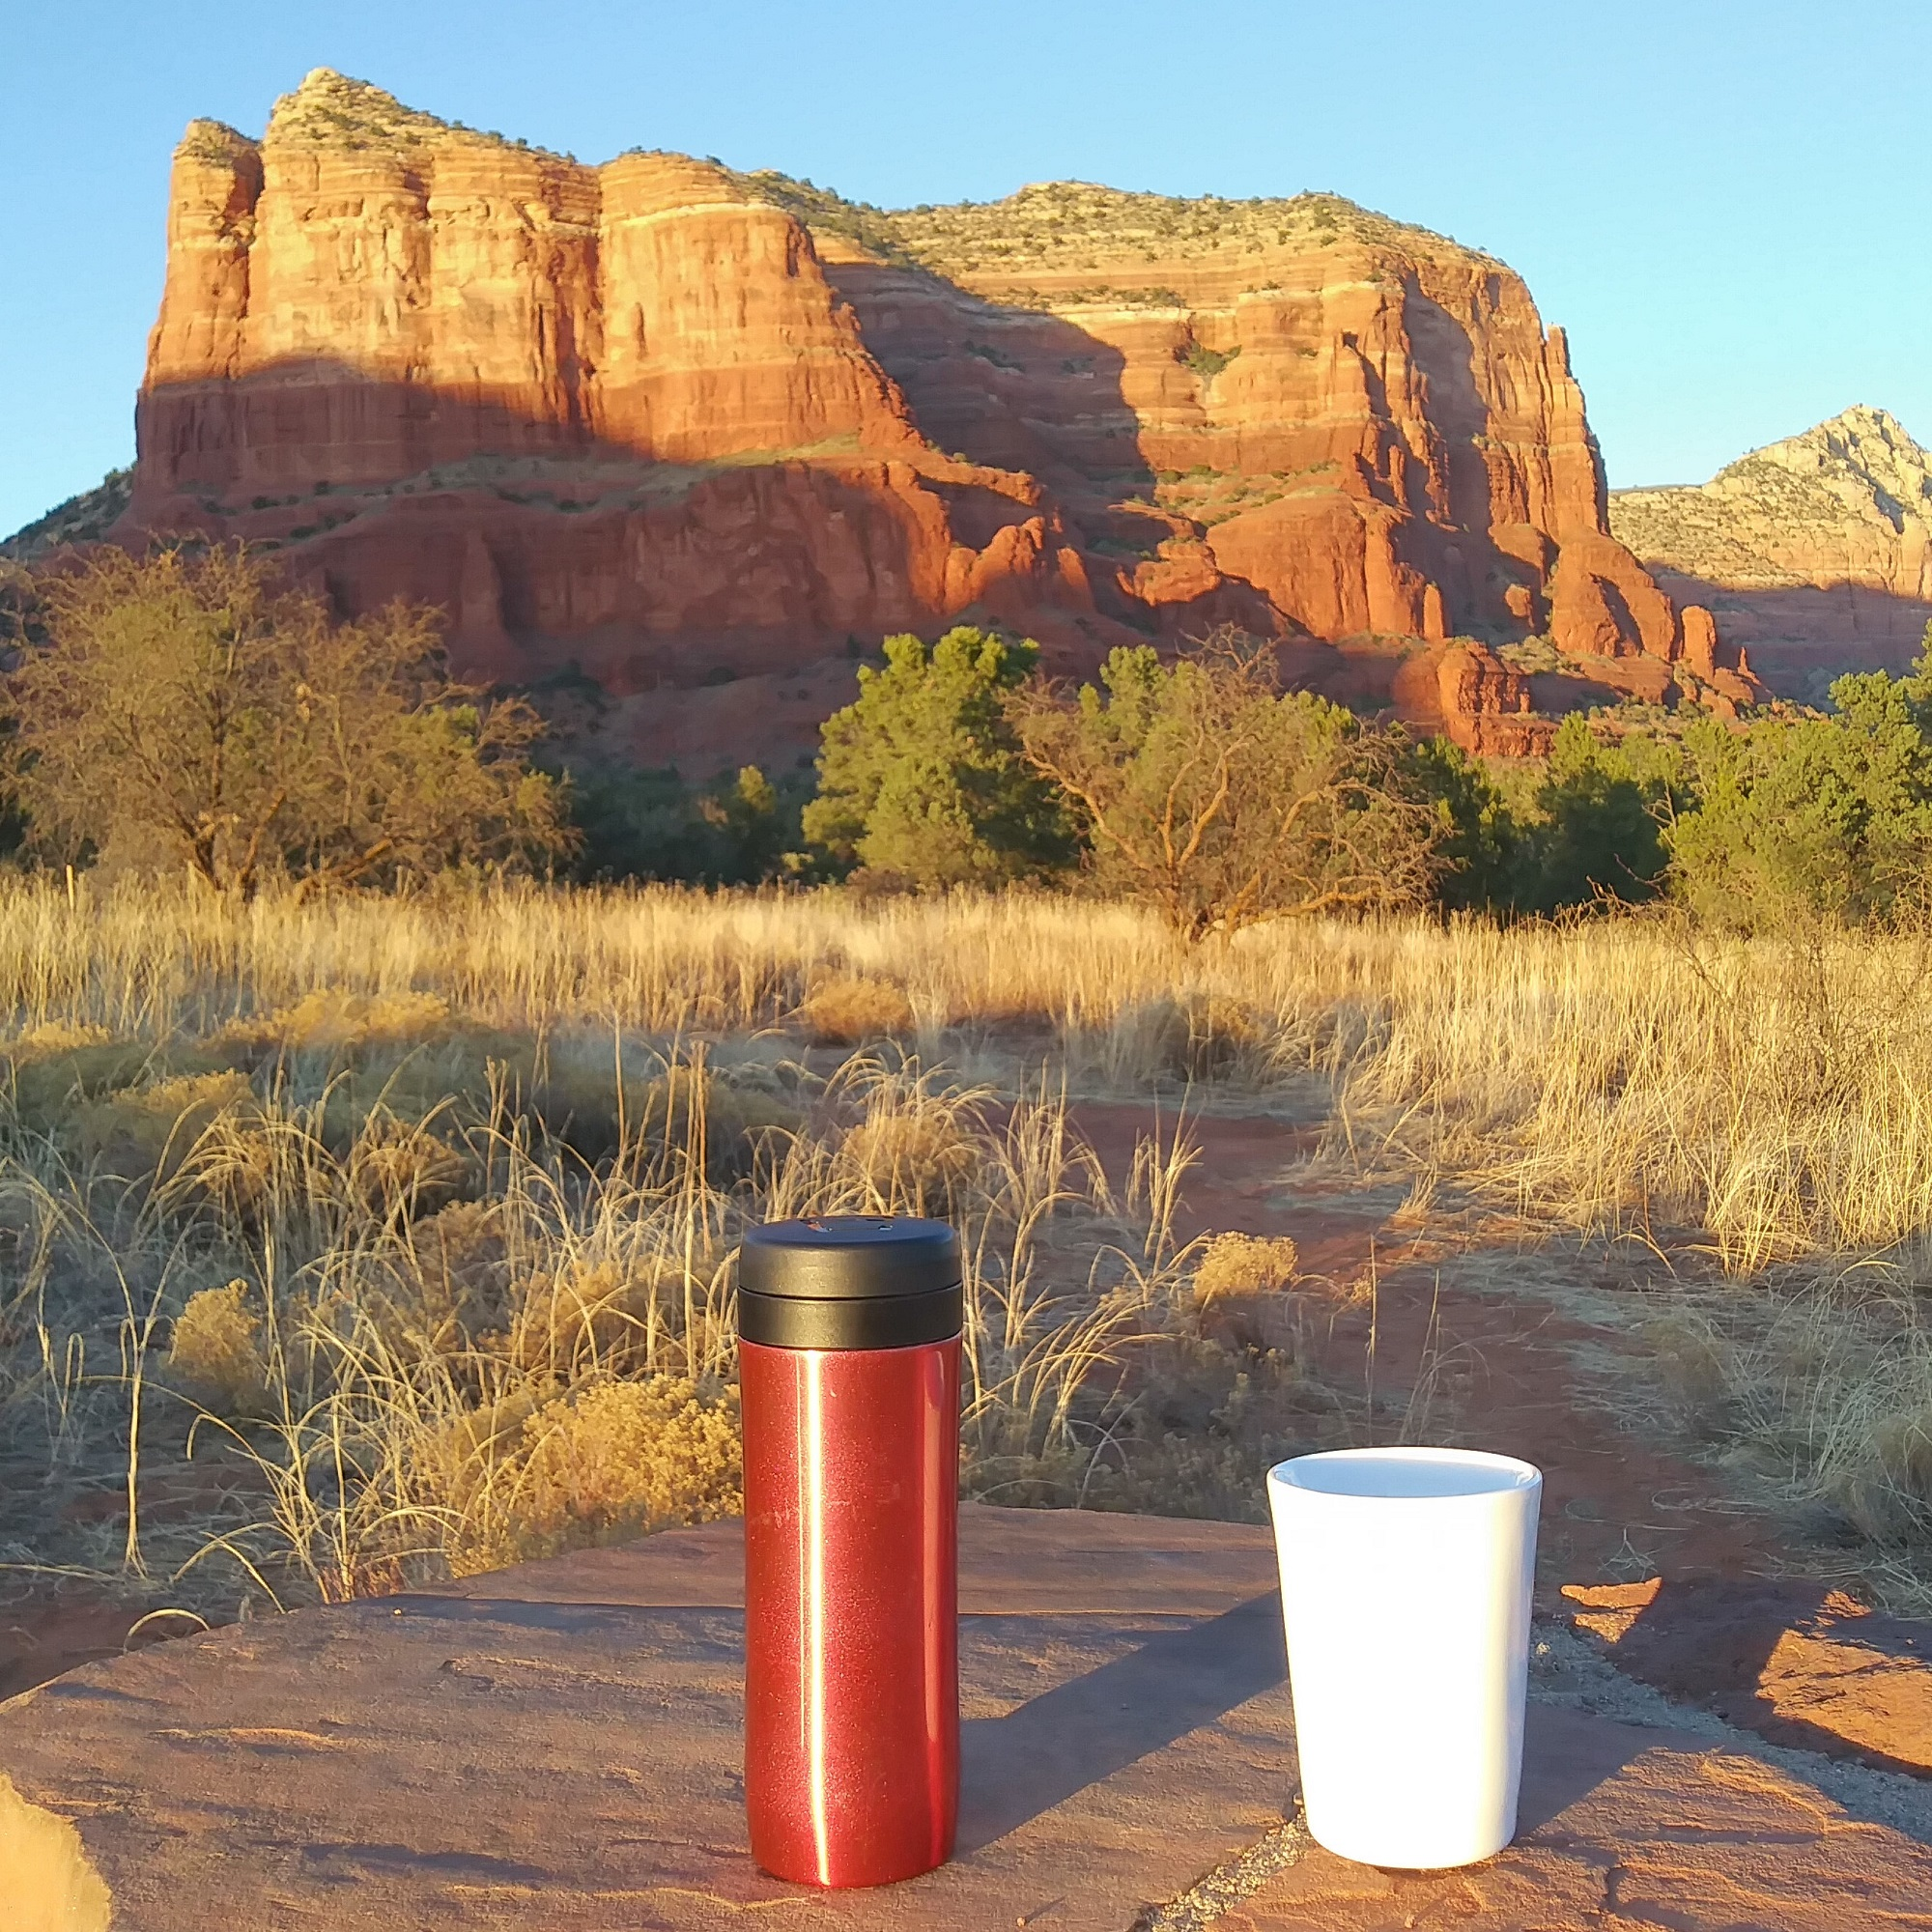 My Travel Press and Therma Cup stand in awe at the magnificence of Courthouse Butte in Red Rock Country, Arizona.